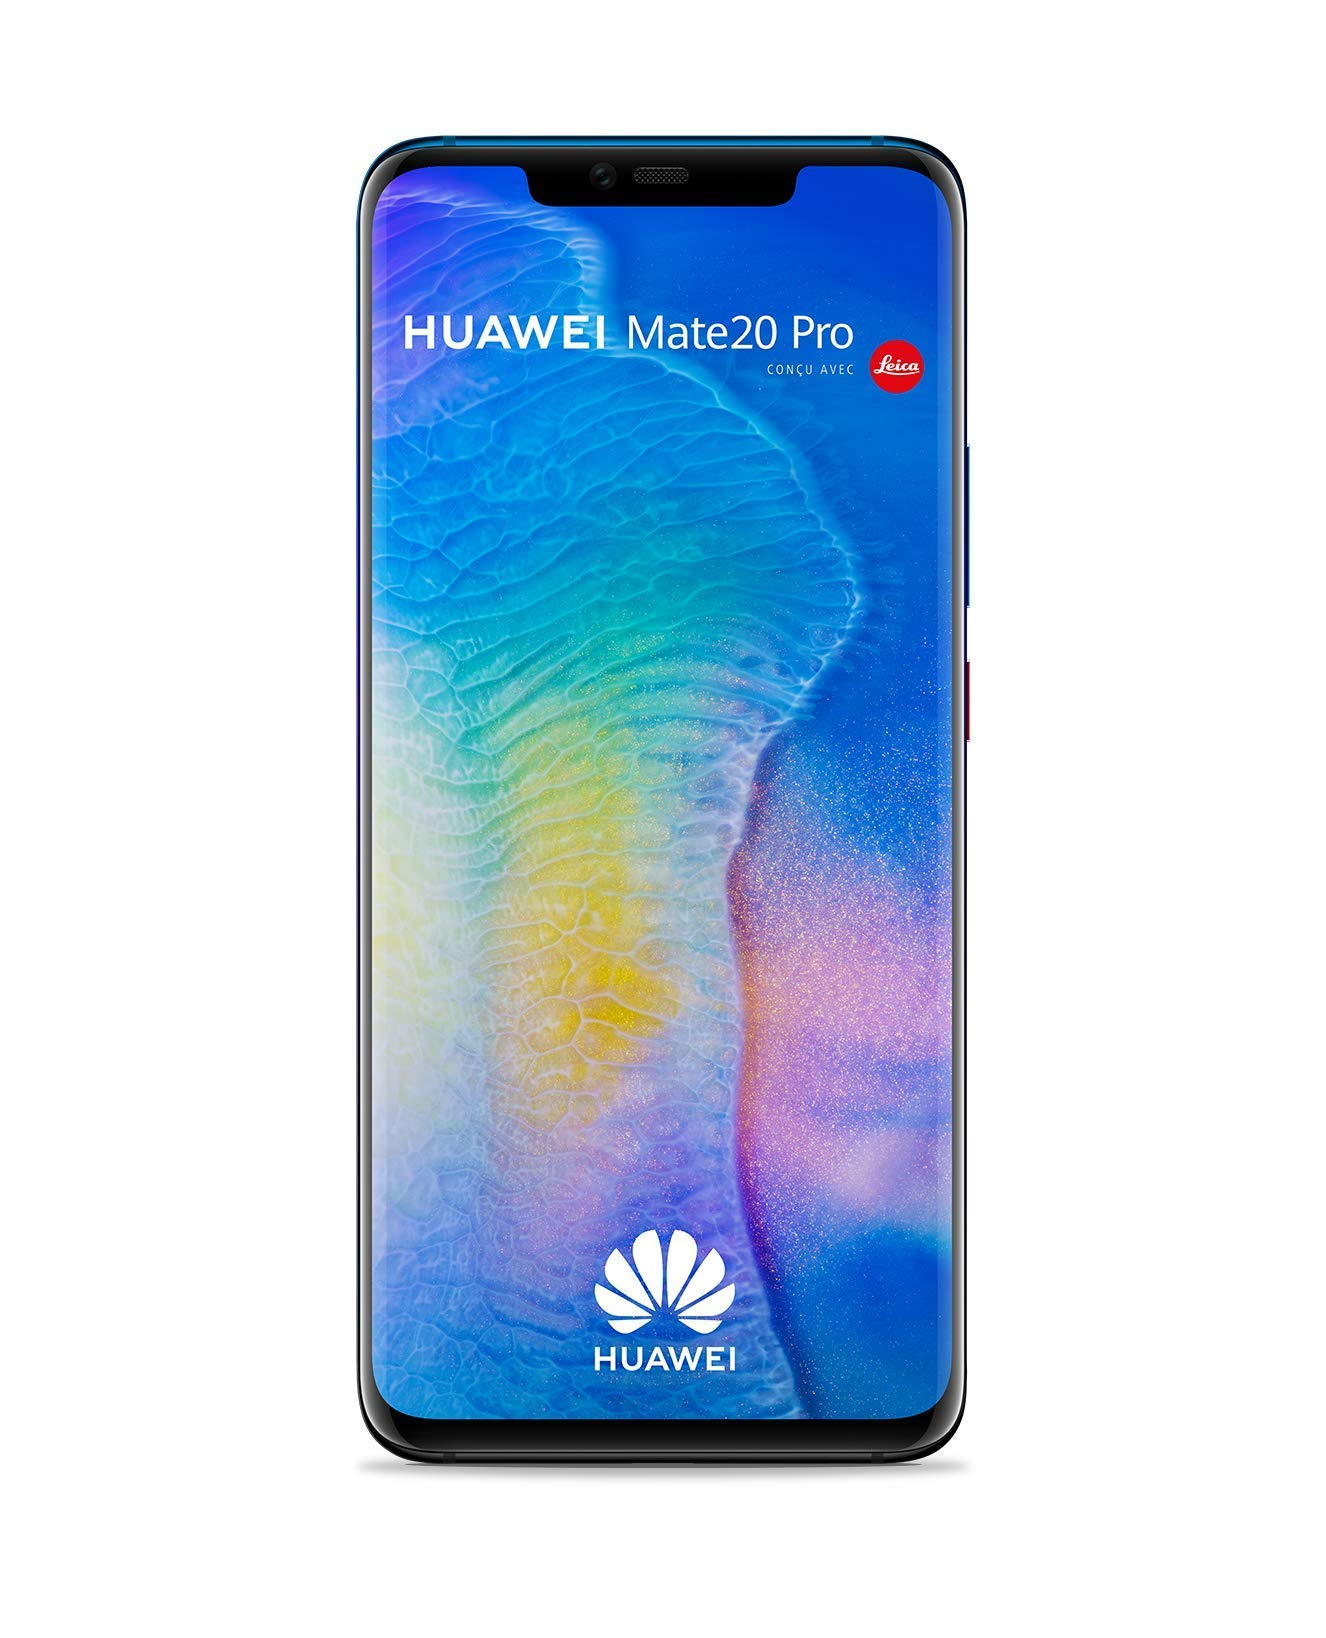 Huawei Mate20 Pro Smartphone SIM simple de 128 GB / 6 GB: Amazon ...